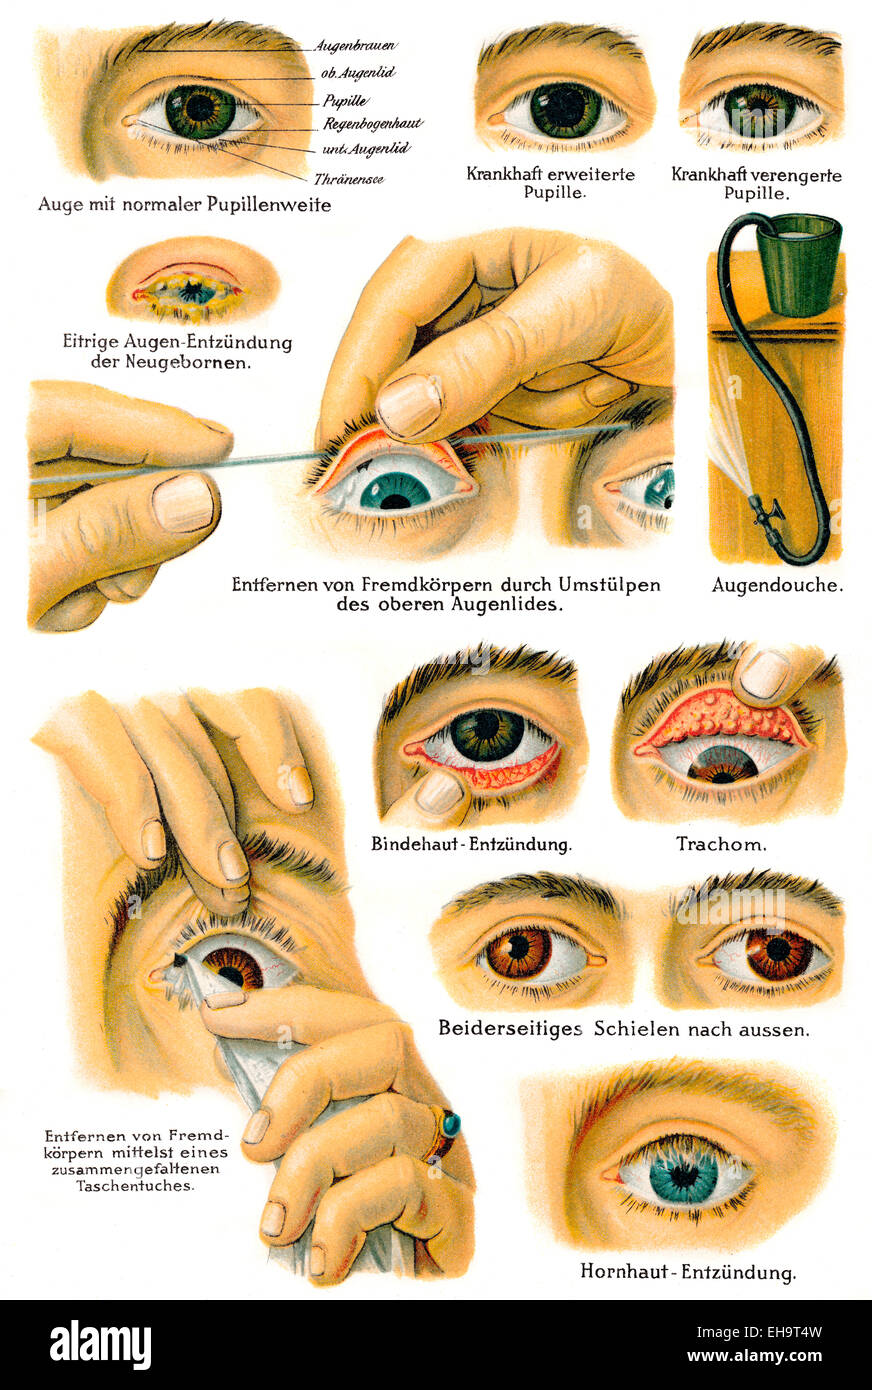 various eye diseases, health counselor, 19th century, - Stock Image